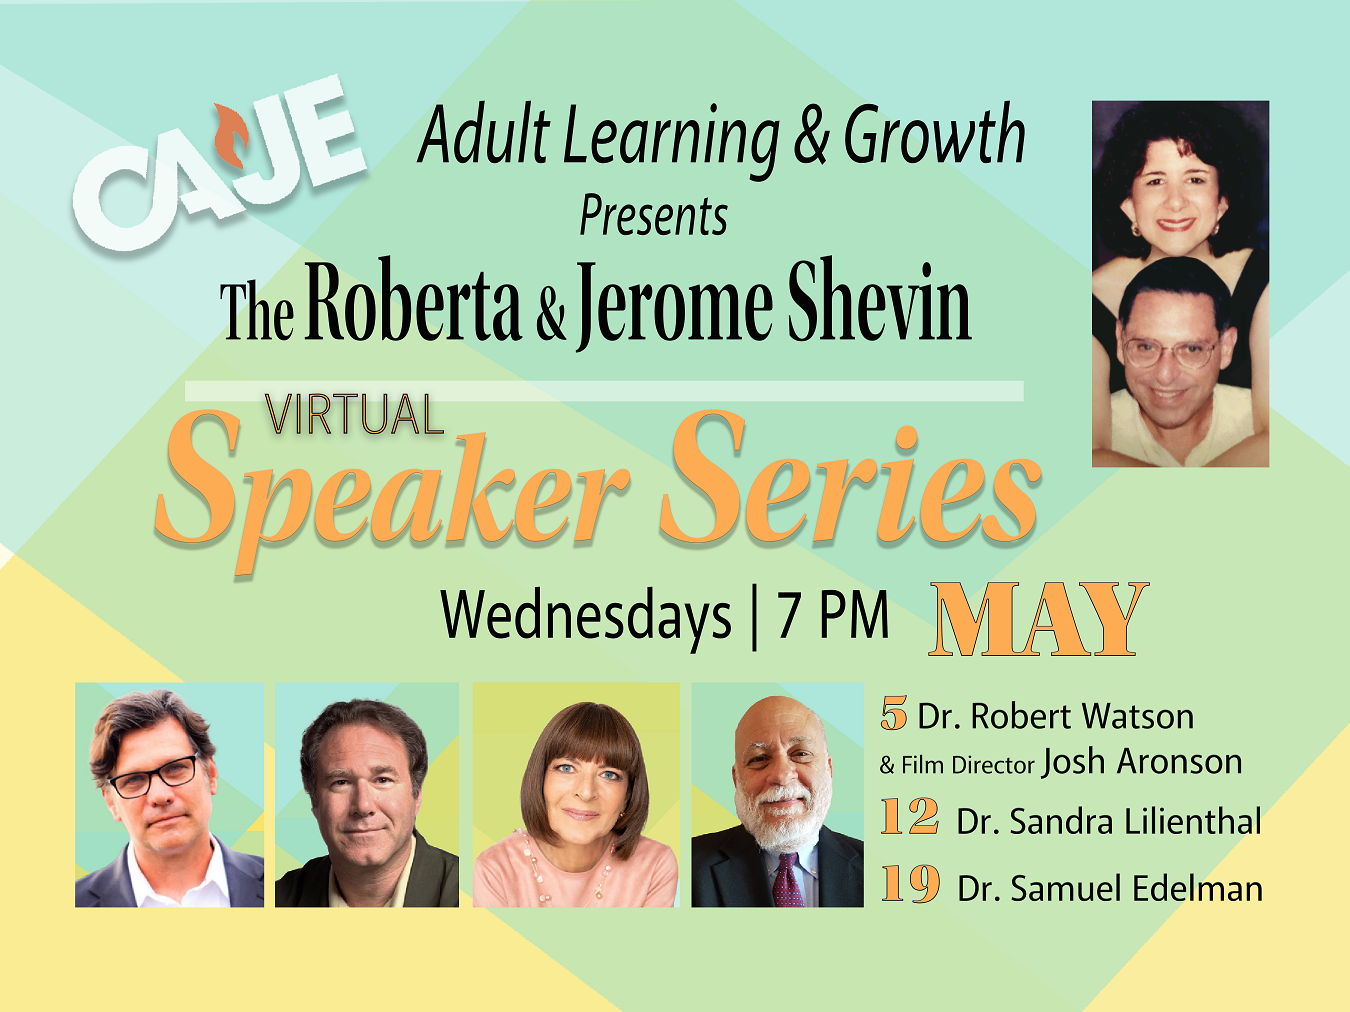 The Roberta & Jerome Shevin Speaker Series